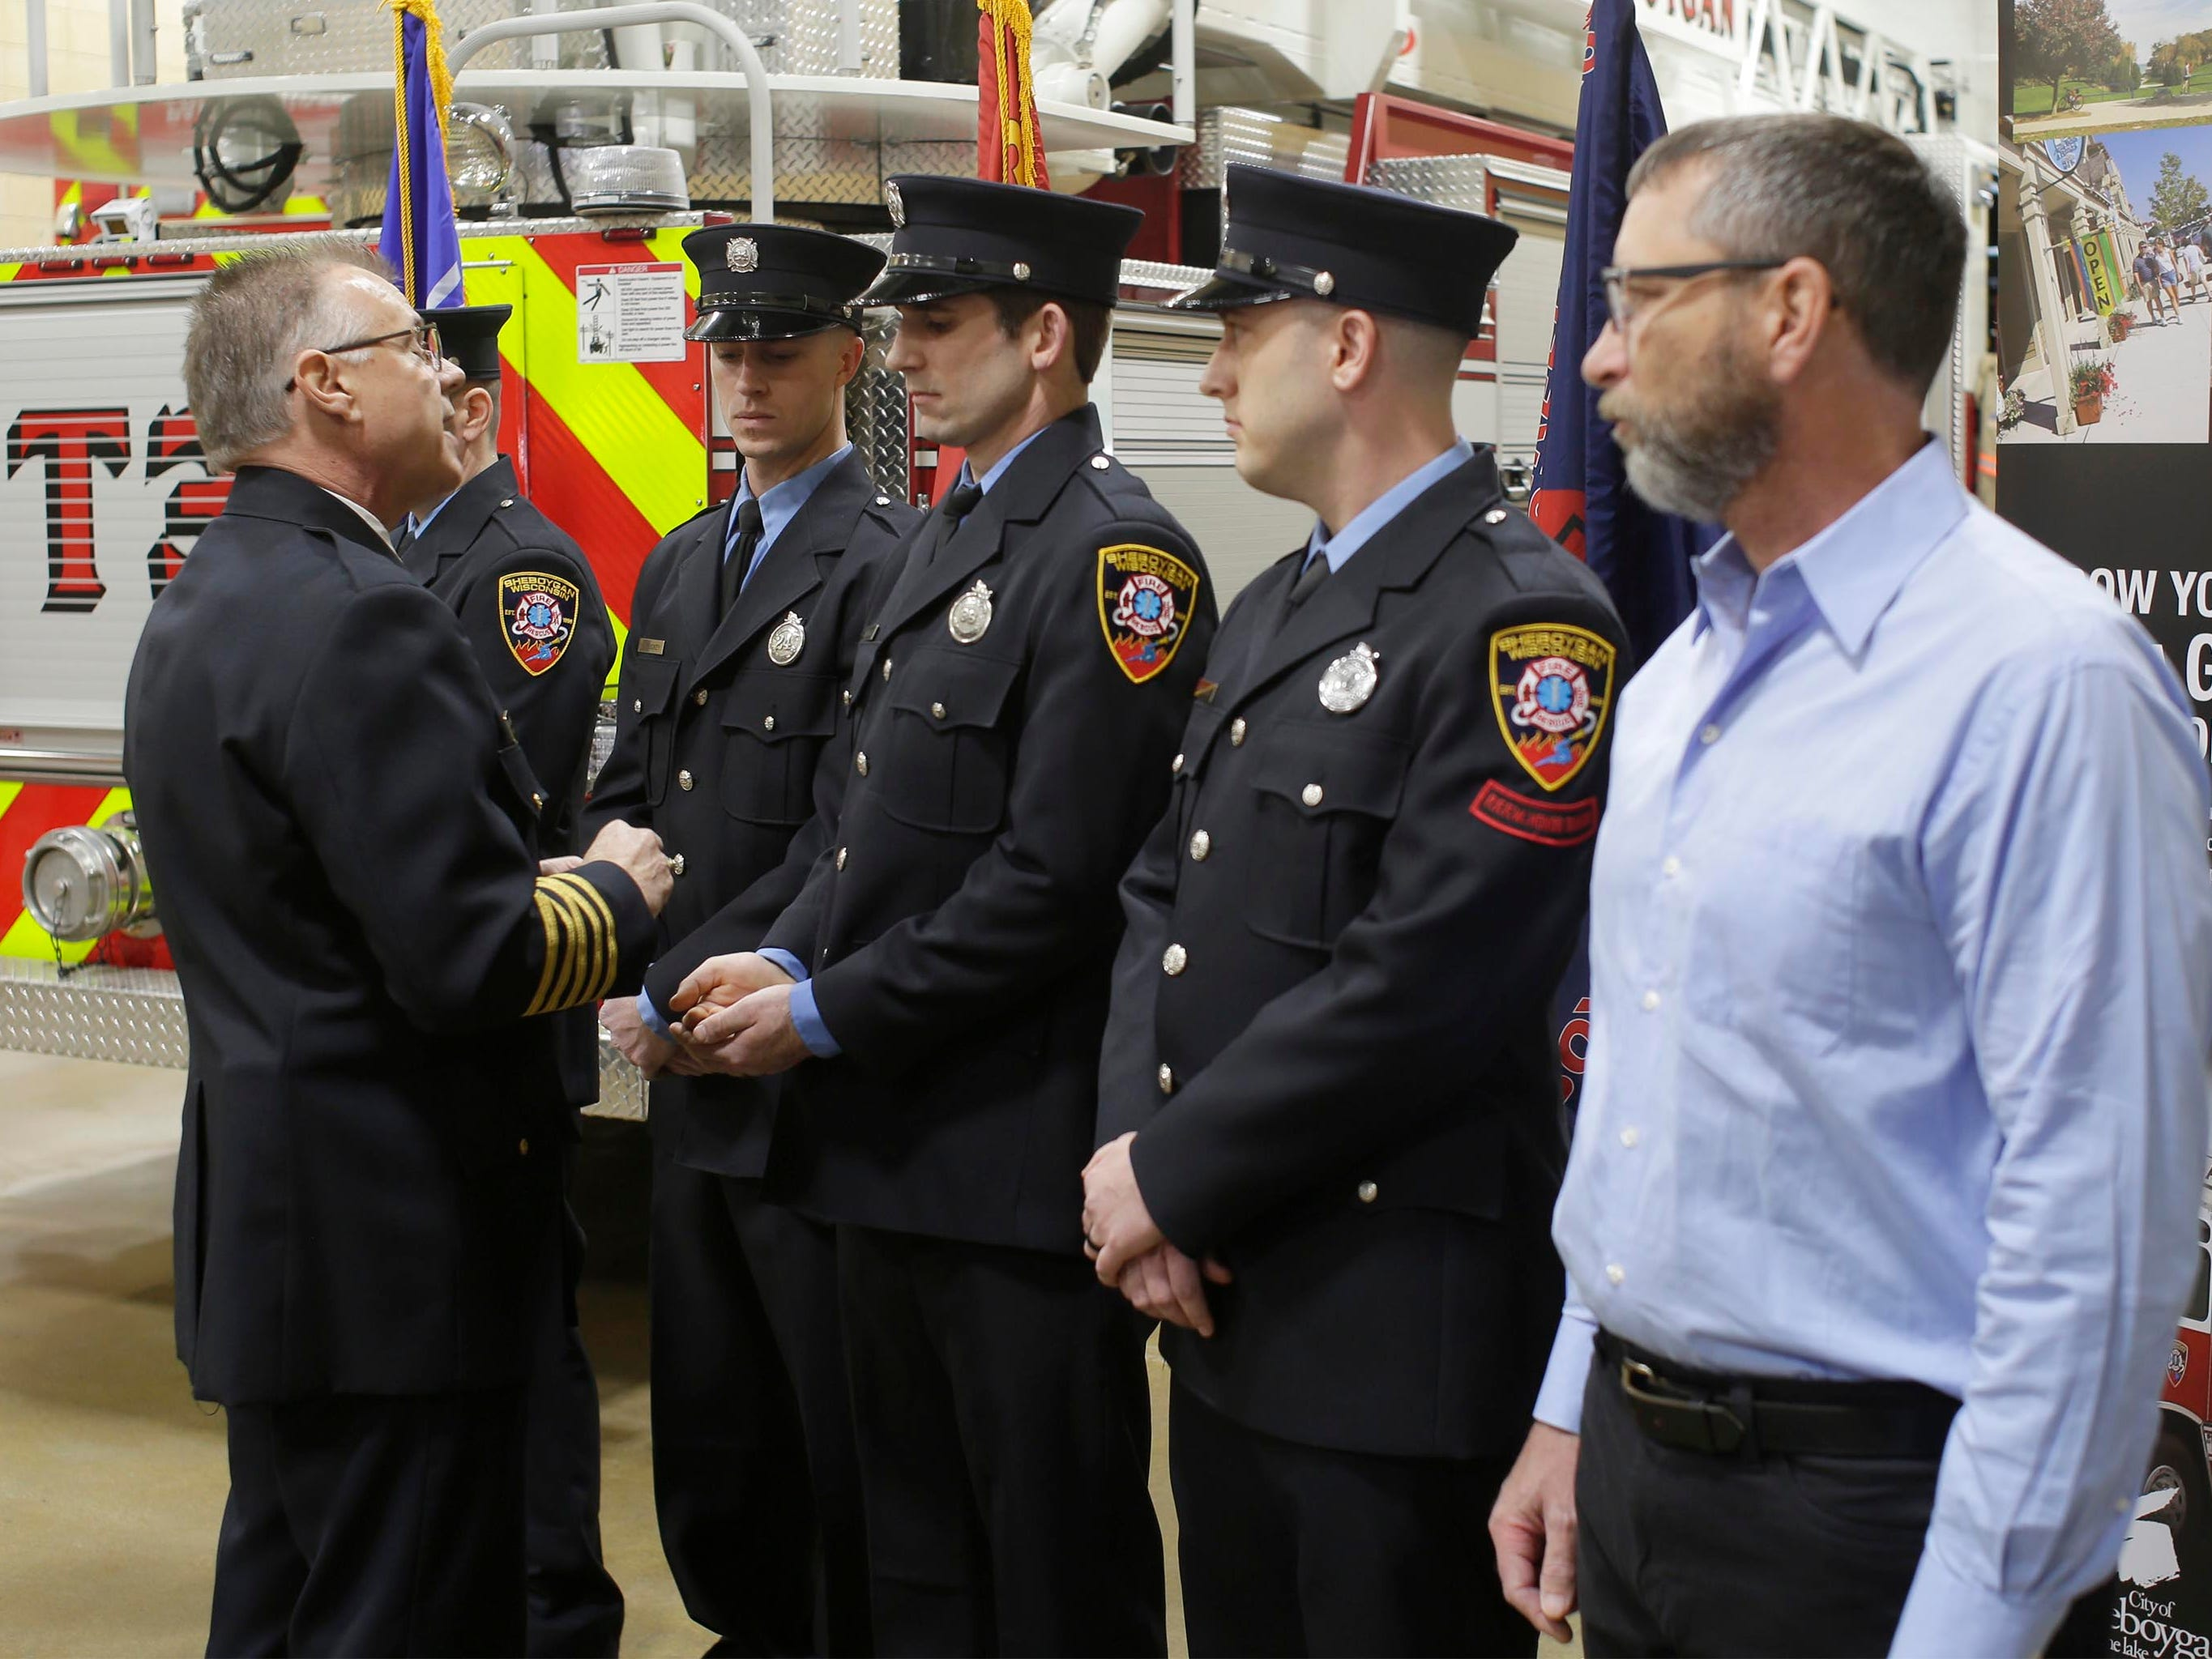 Sheboygan Fire Chief Mike Romas hands out awards to firefighters who saved the life of a youngster, Wednesday, February 21, 2019, in Sheboygan, Wis.